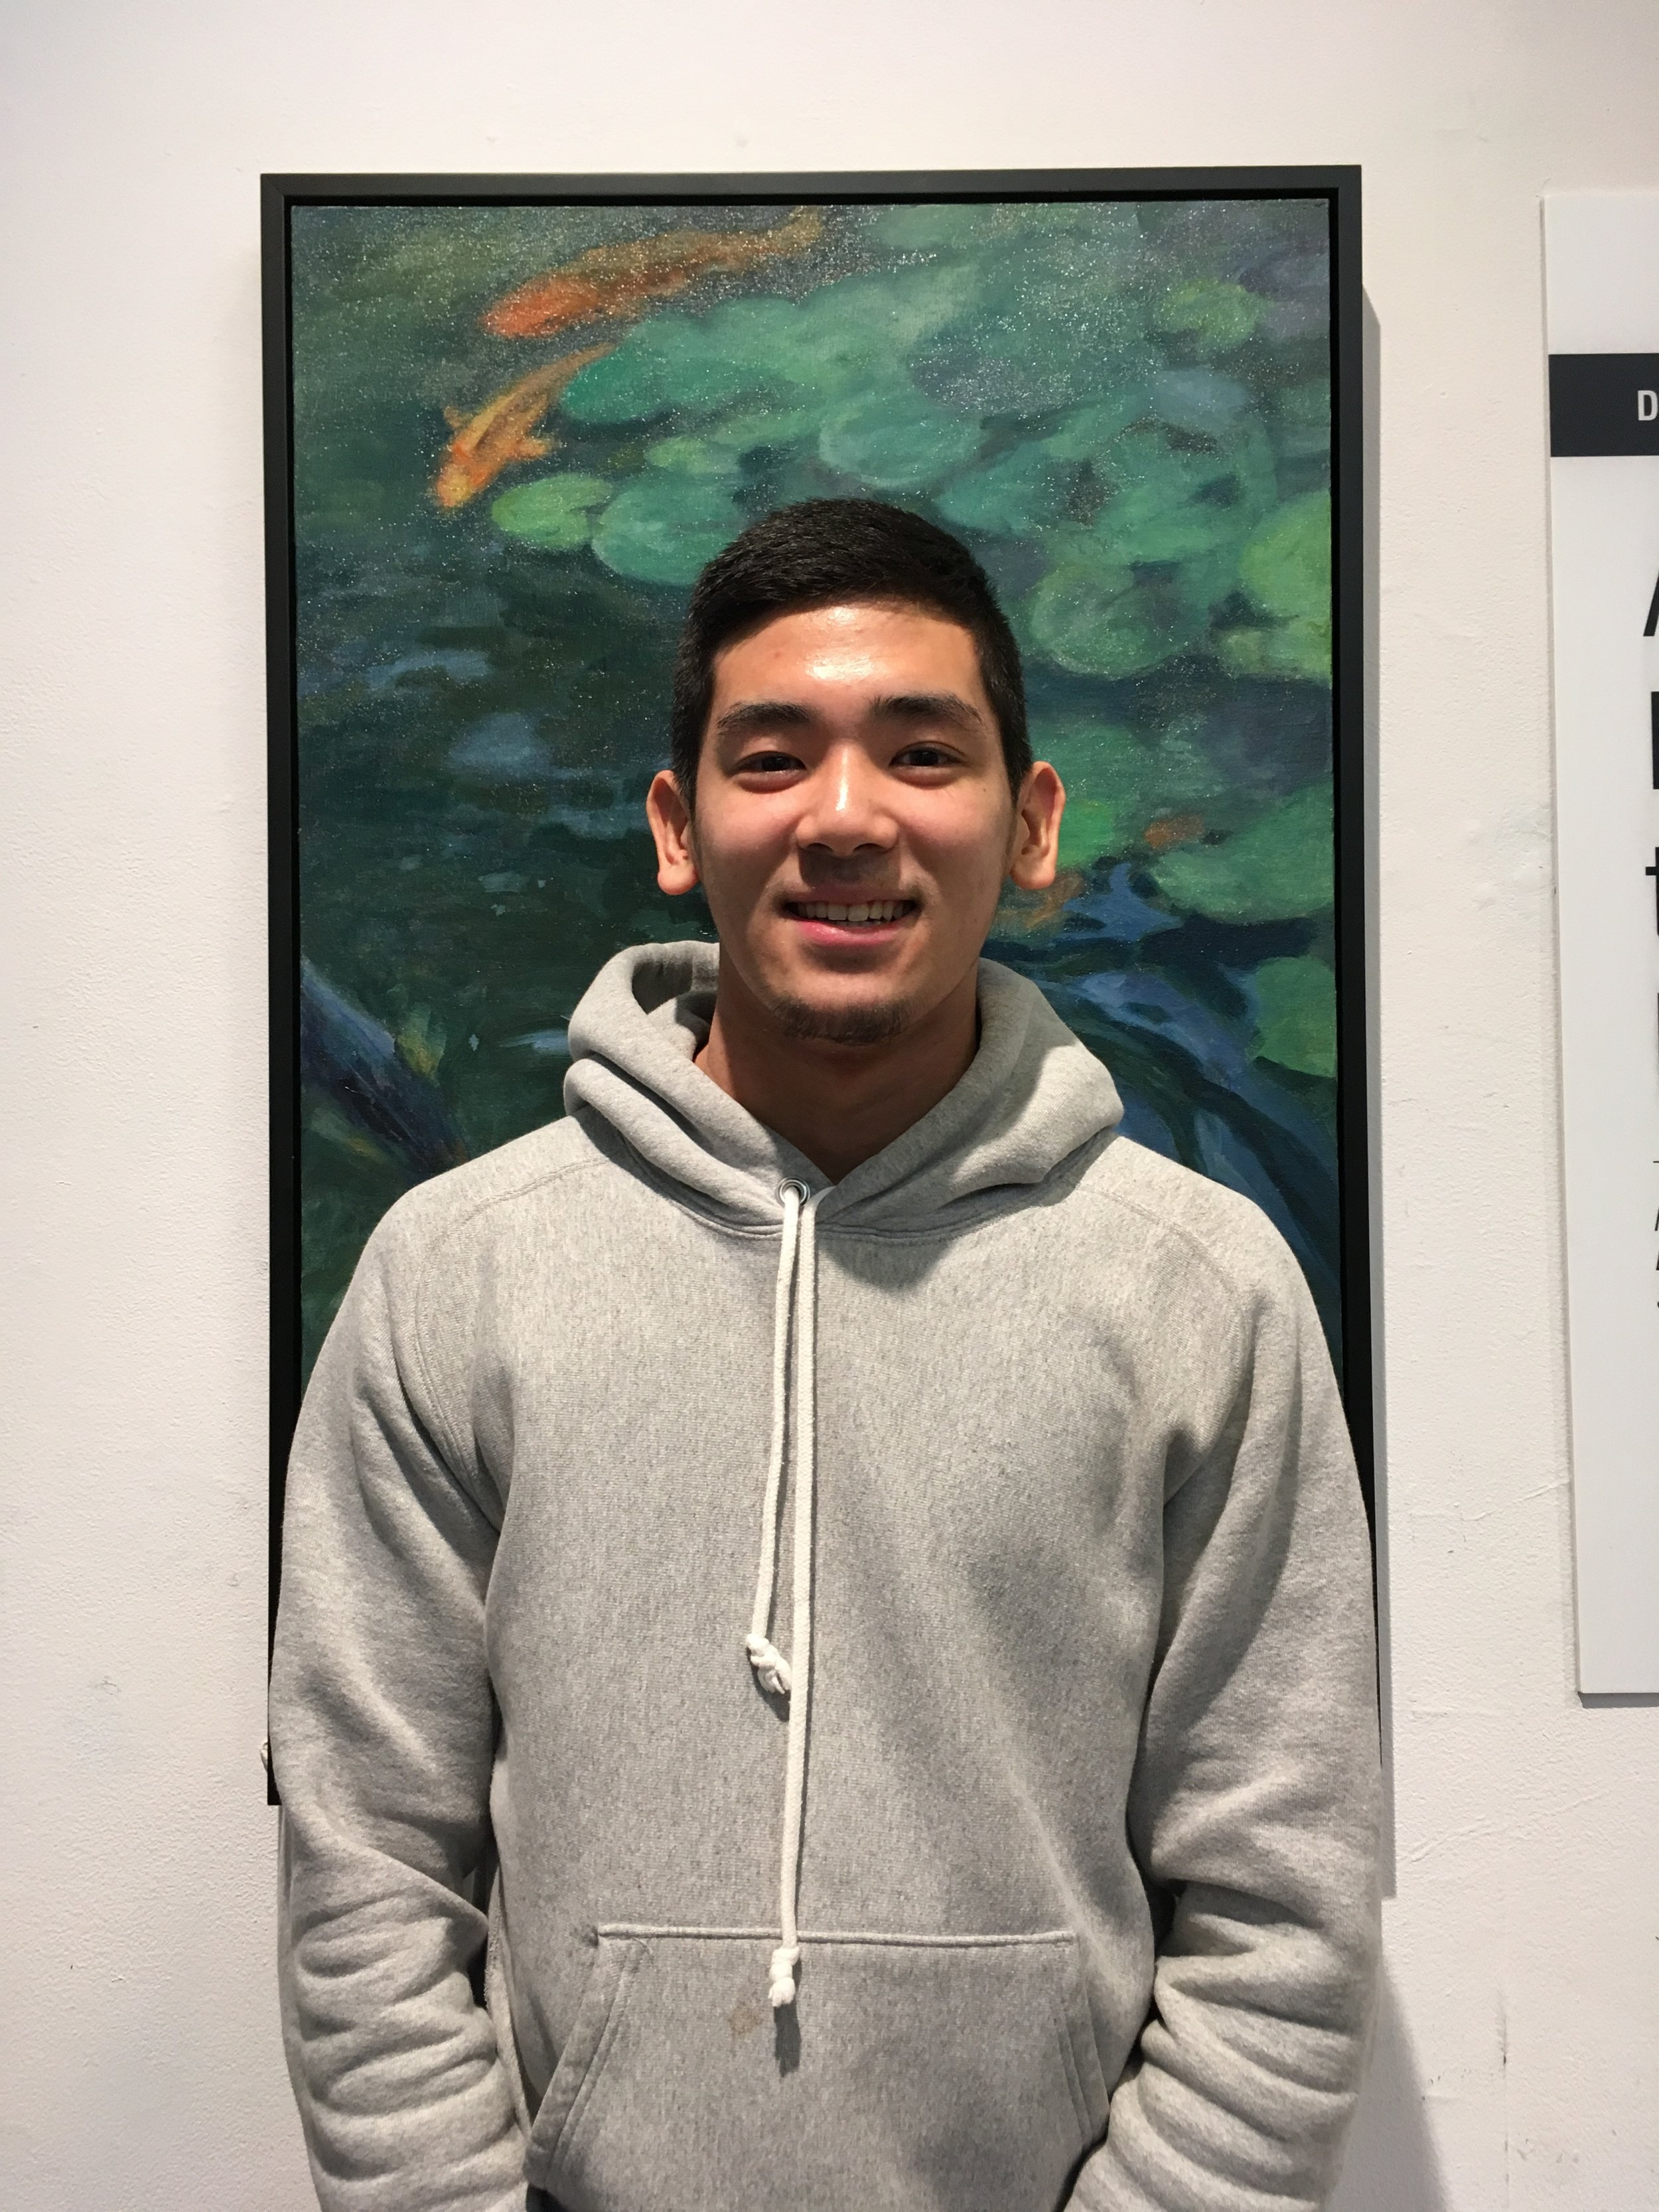 Hello, my name is Uta Uchida and I am a first year student here at Dominican University from Tokyo, Japan. I am a Communications major and my work will reflect what I find interesting. I play for the Dominican men's basketball team. I enjoy listening to music, meeting new people, and playing basketball. I hope to work in areas such as marketing, broadcasting and journalism relating to the sports field in the near future. I can speak Japanese, English and a bit of French. Attending schools in 3 different continents allowed me to learn about different views and cultures, broadening my perspectives on various news stories.